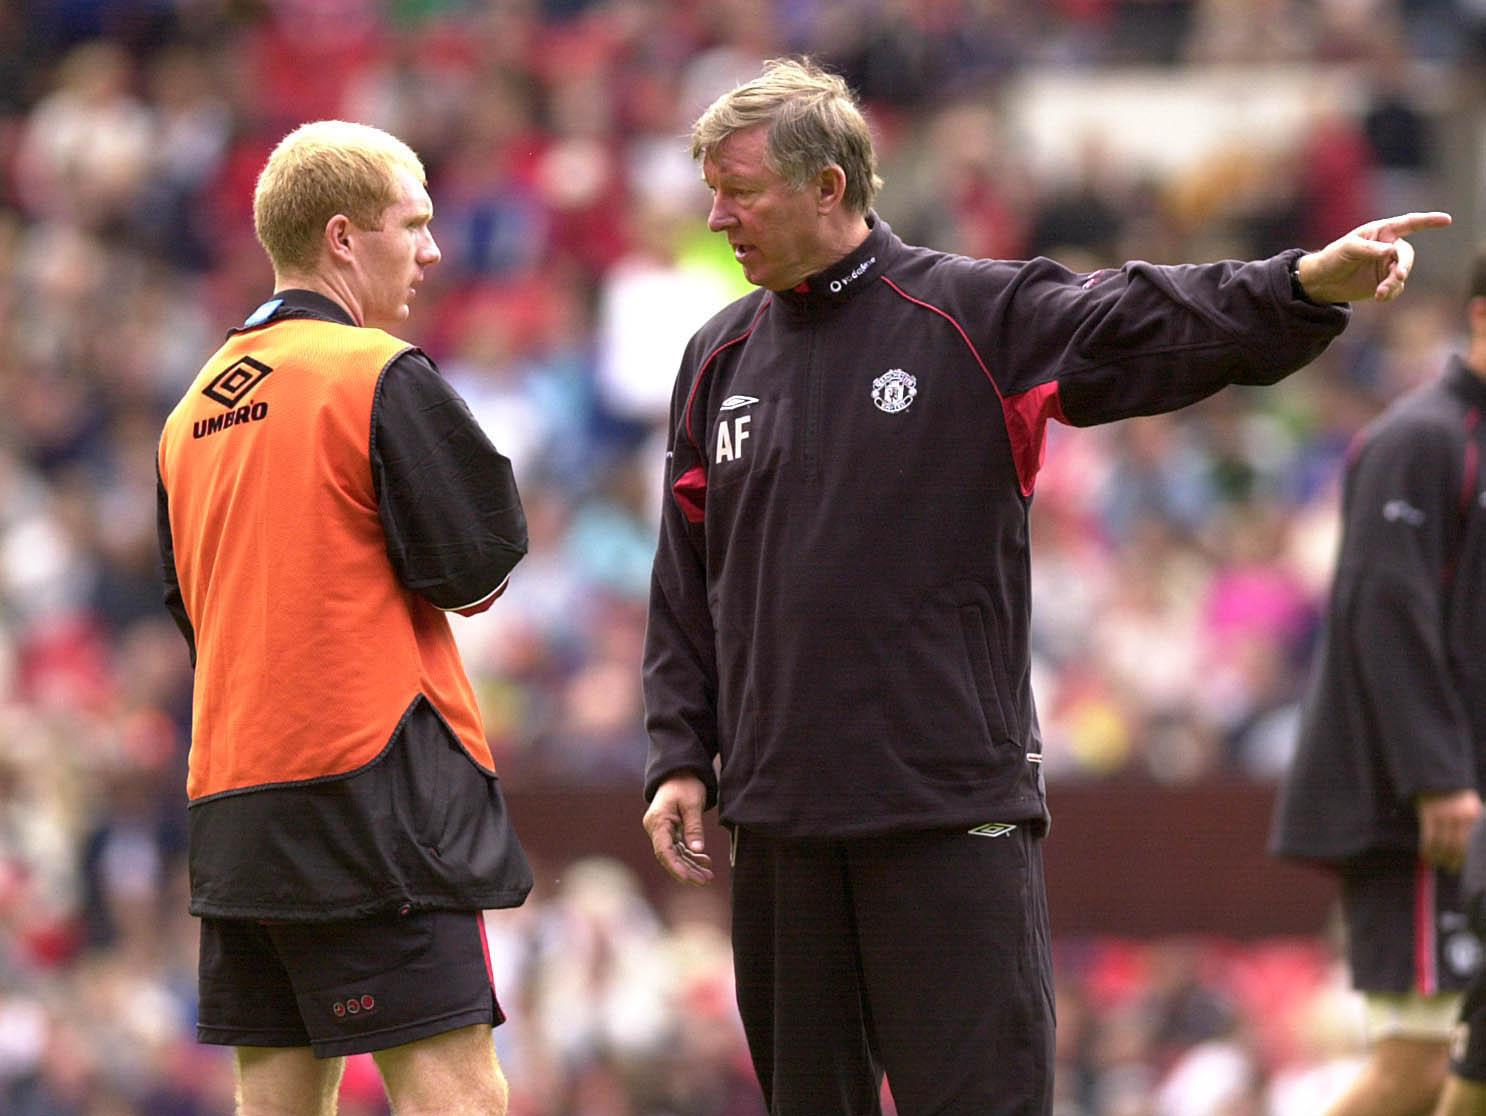 Fergie and Scholes enjoyed a successful relationship as manager and player over a series of trophy-laden years